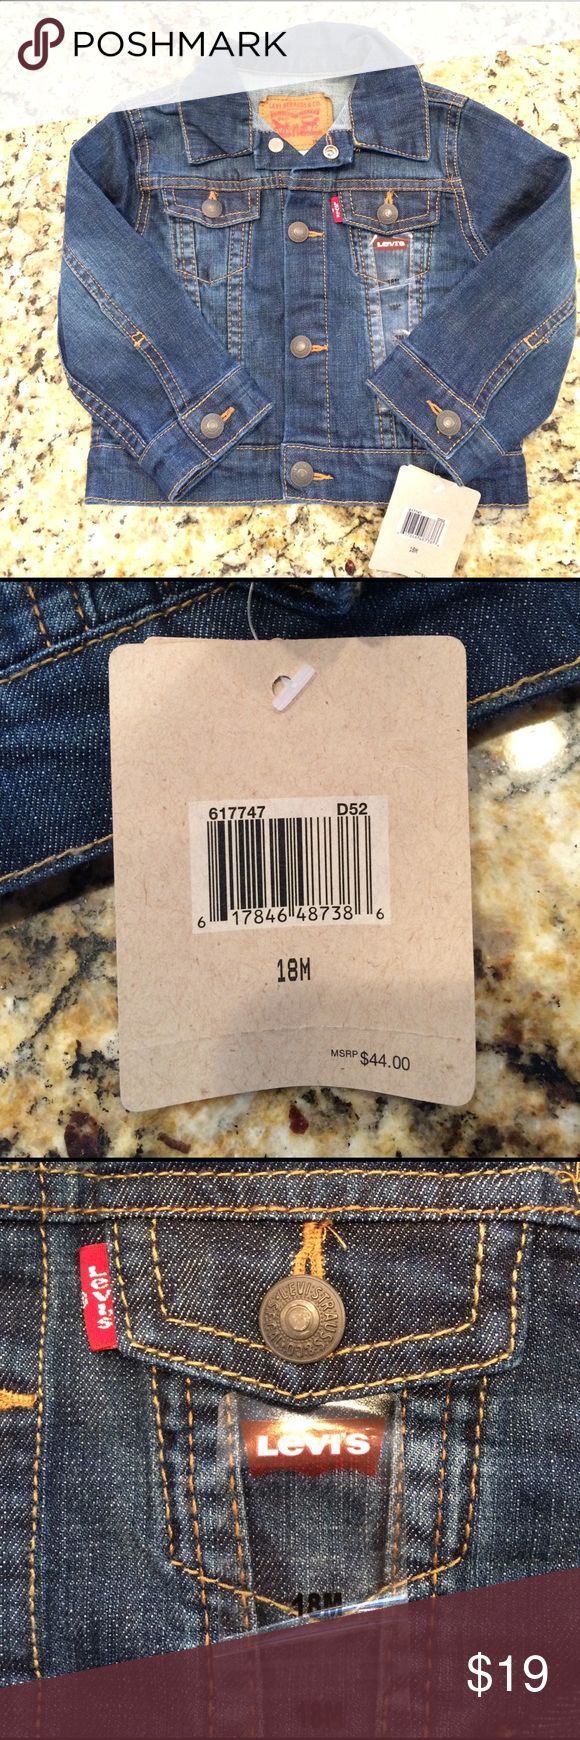 NWT baby's jean jacket. 18months. Adorable gender neutral jean jacket. My son outgrew before he could wear. Size, 18 months. Levi's Jackets & Coats Jean Jackets